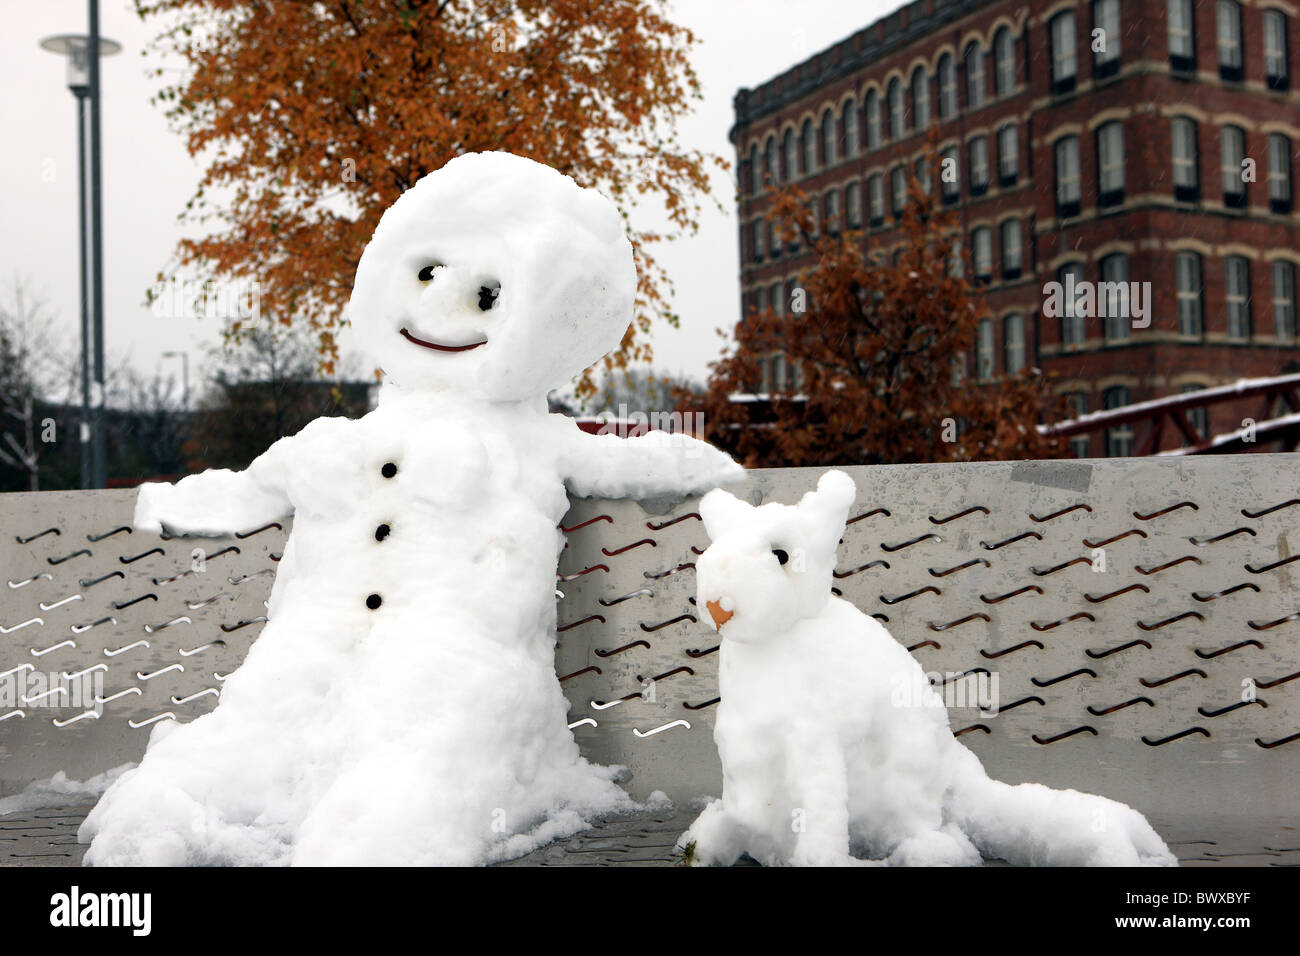 snowman-and-dog-sitting-on-a-park-bench-